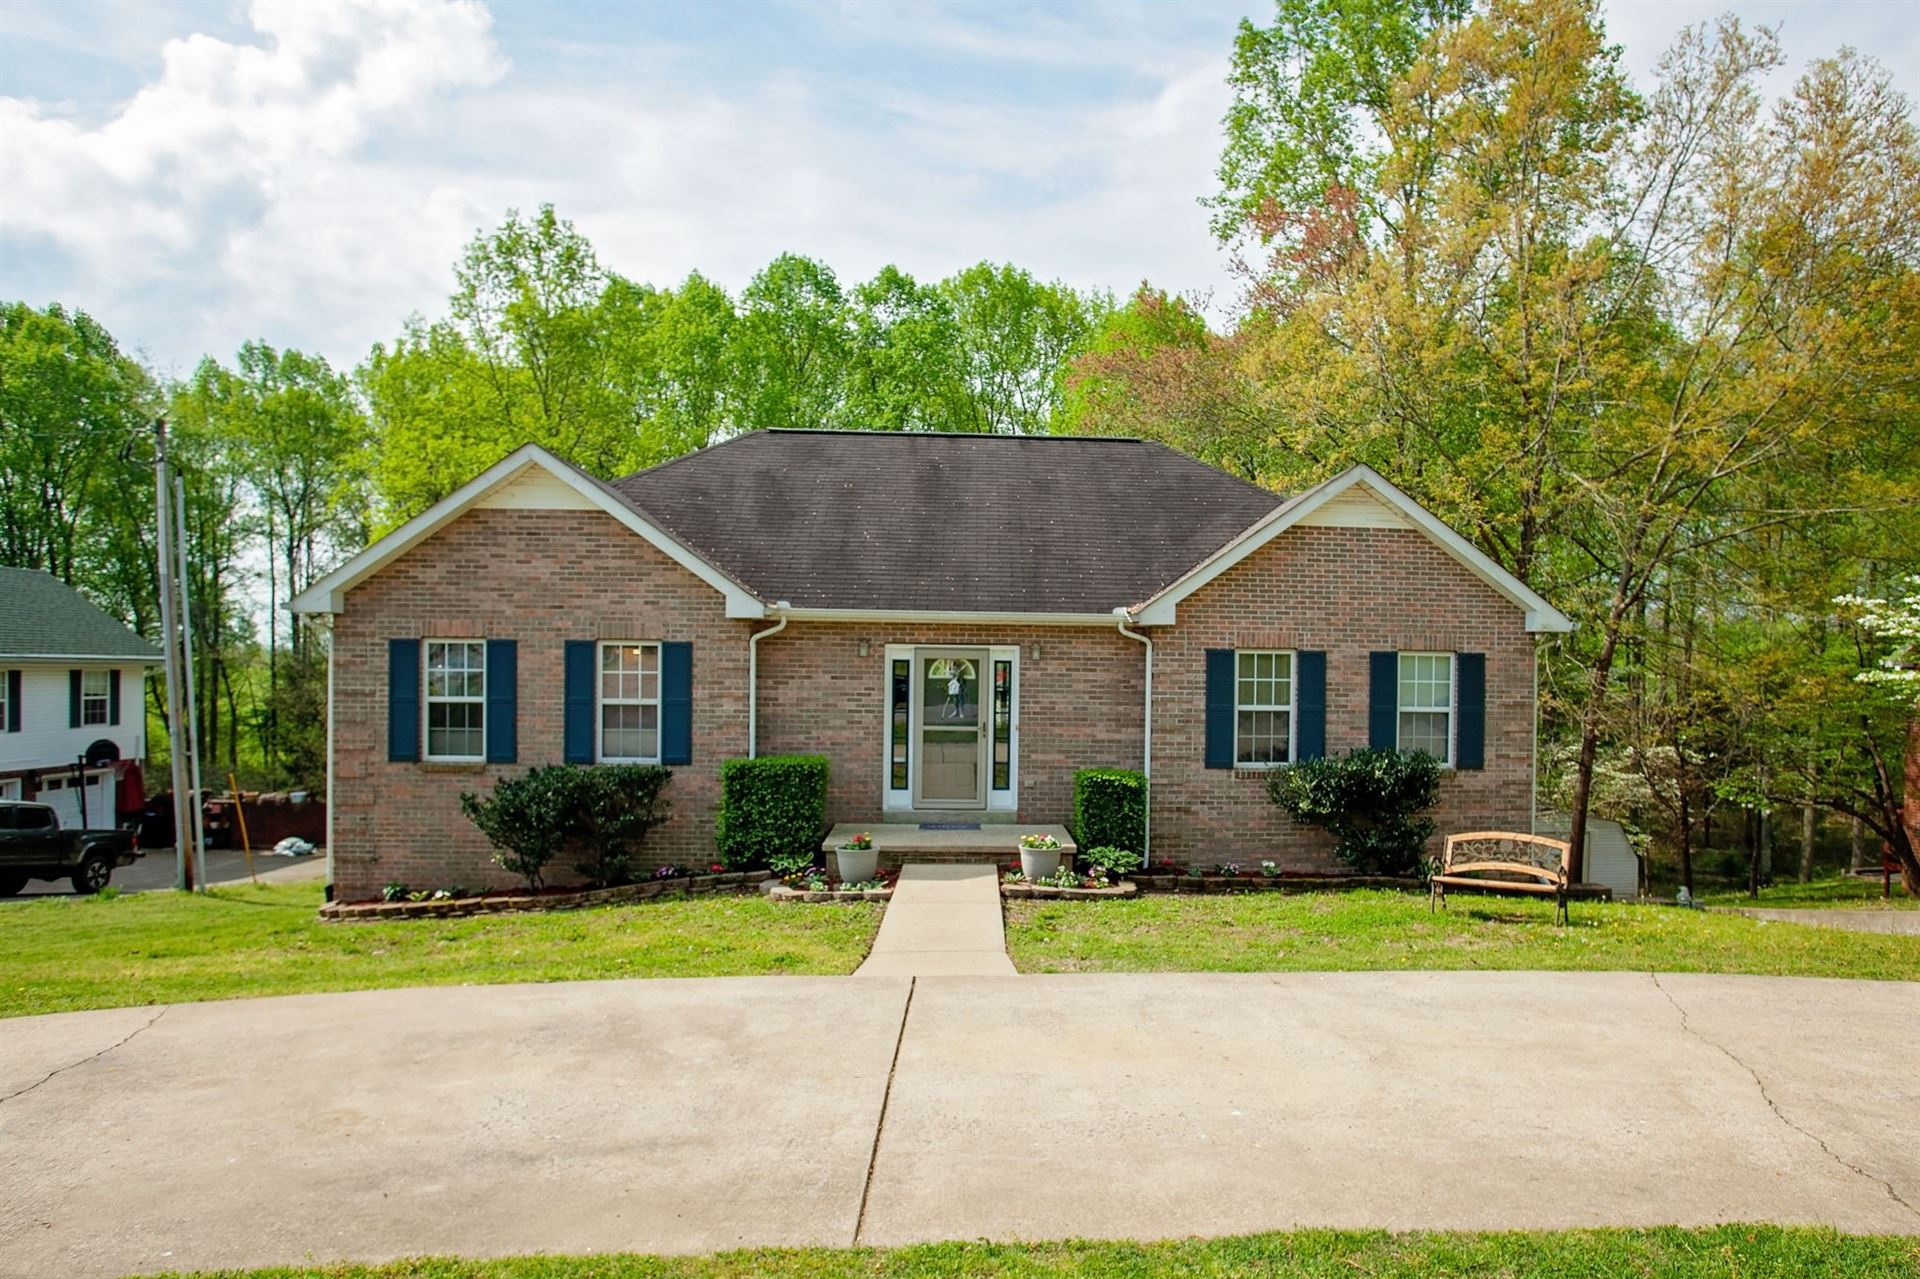 Photo for 167 Hickory Hollow Dr, Dickson, TN 37055 (MLS # 2139219)